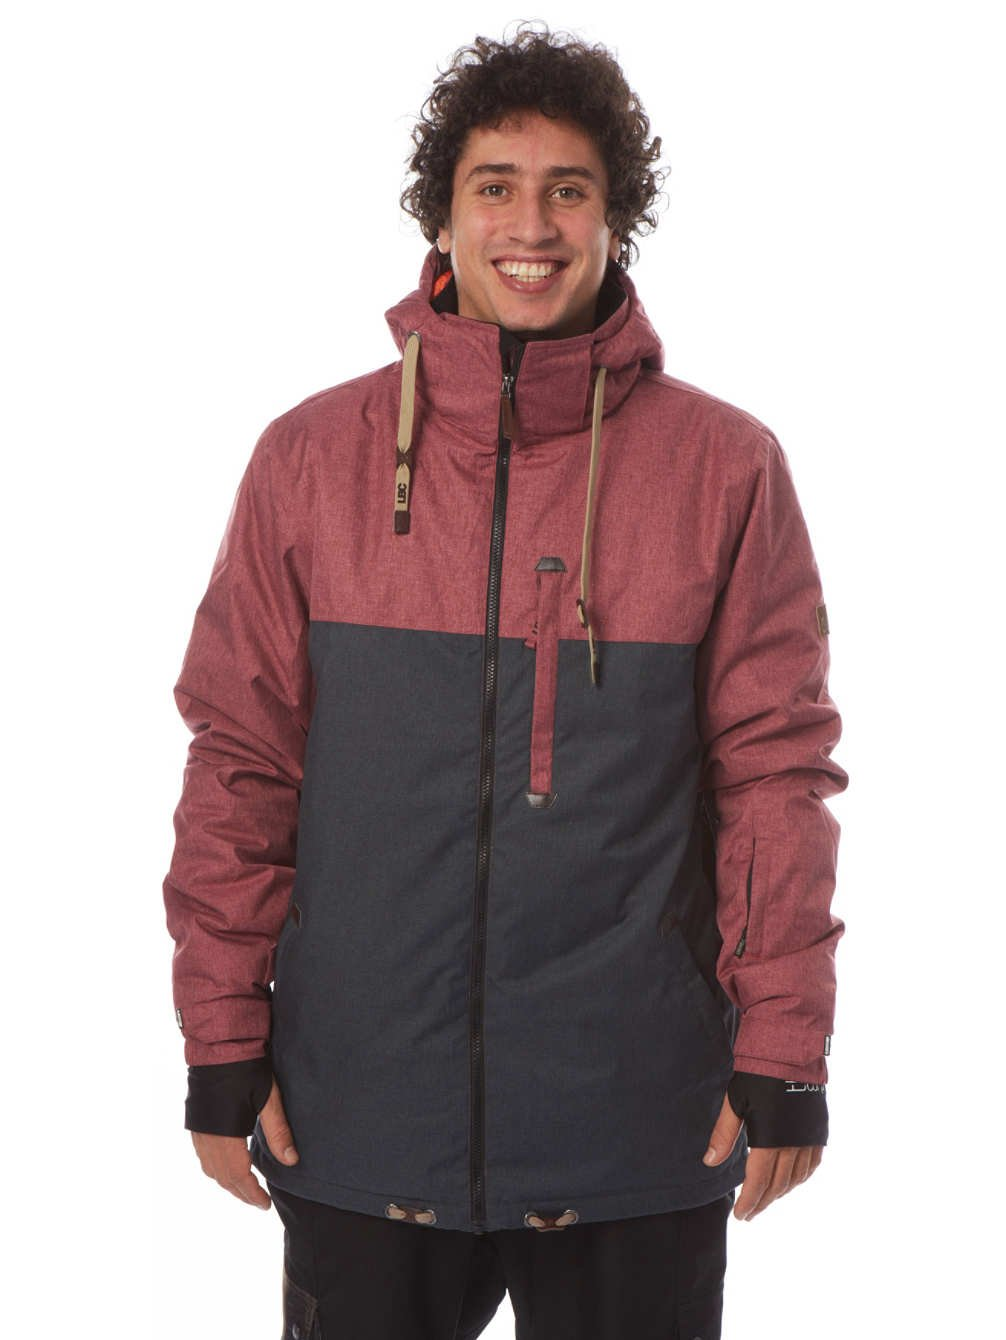 LIGHT Herren Outerwear - Jacke Gringo